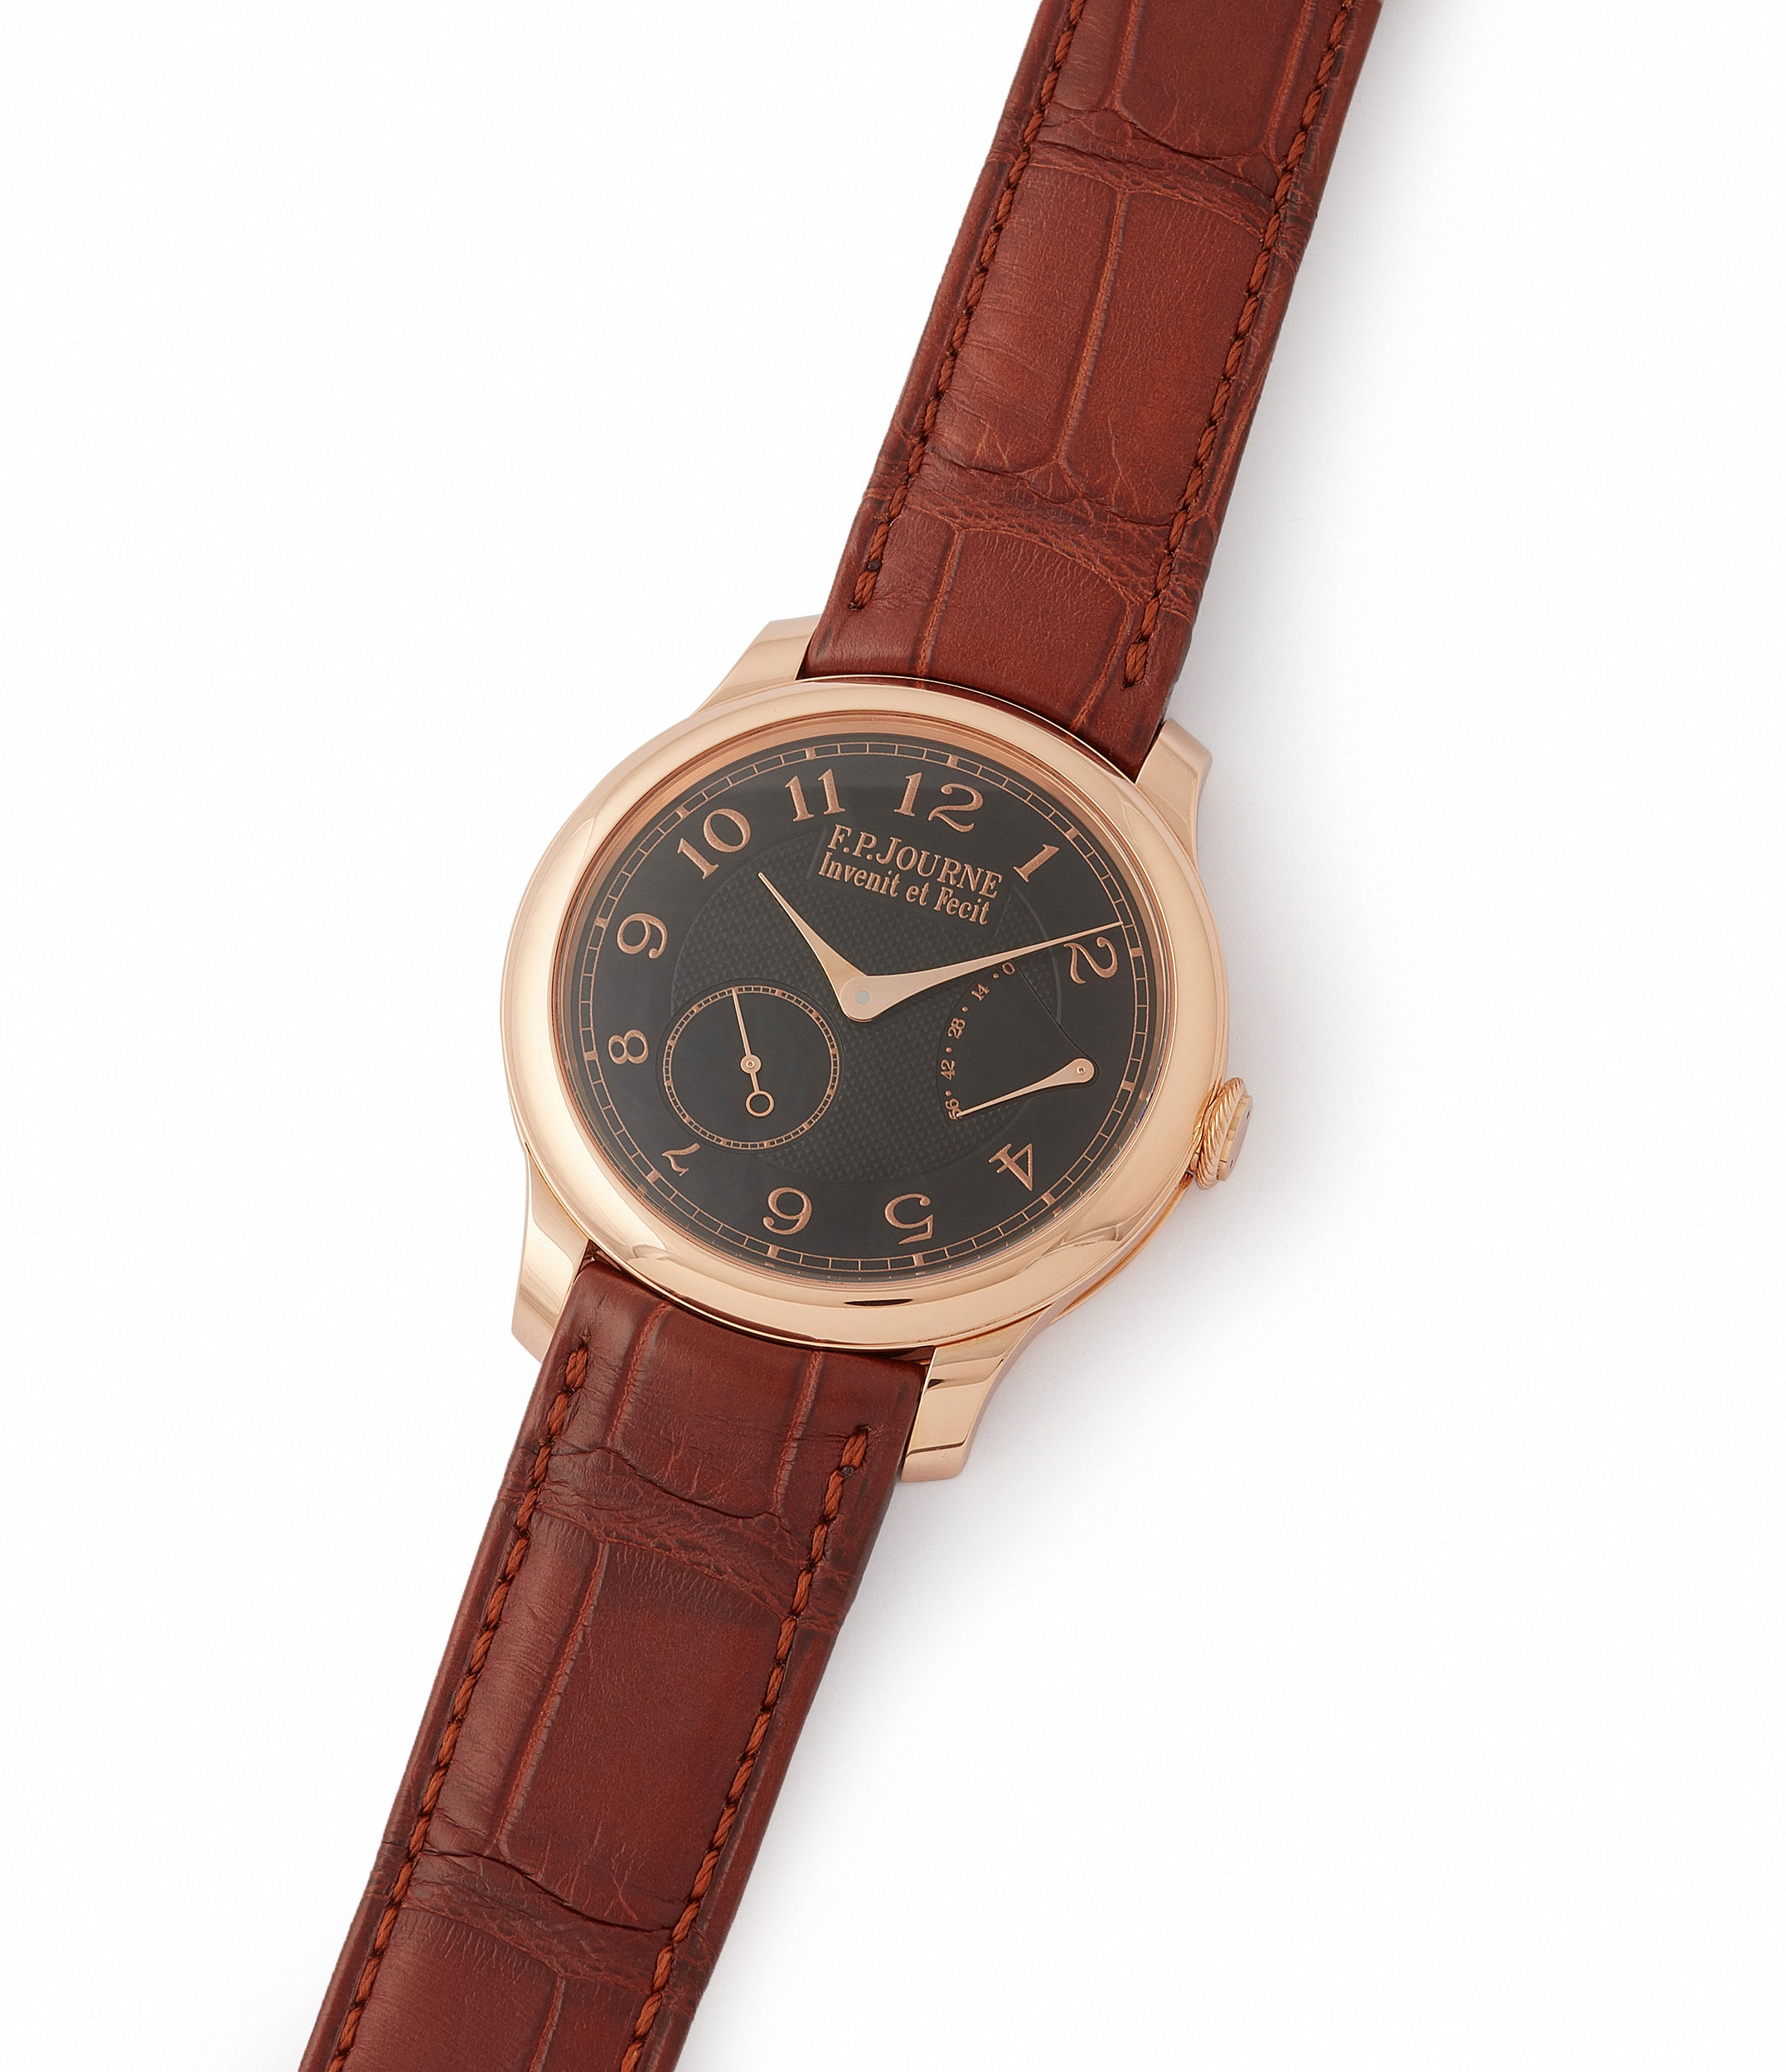 find F. P. Journe Boutique Edition Chronometre Souverain red gold black dial rare watch independent watchmaker for sale online at A Collected Man London UK specialist of rare watches